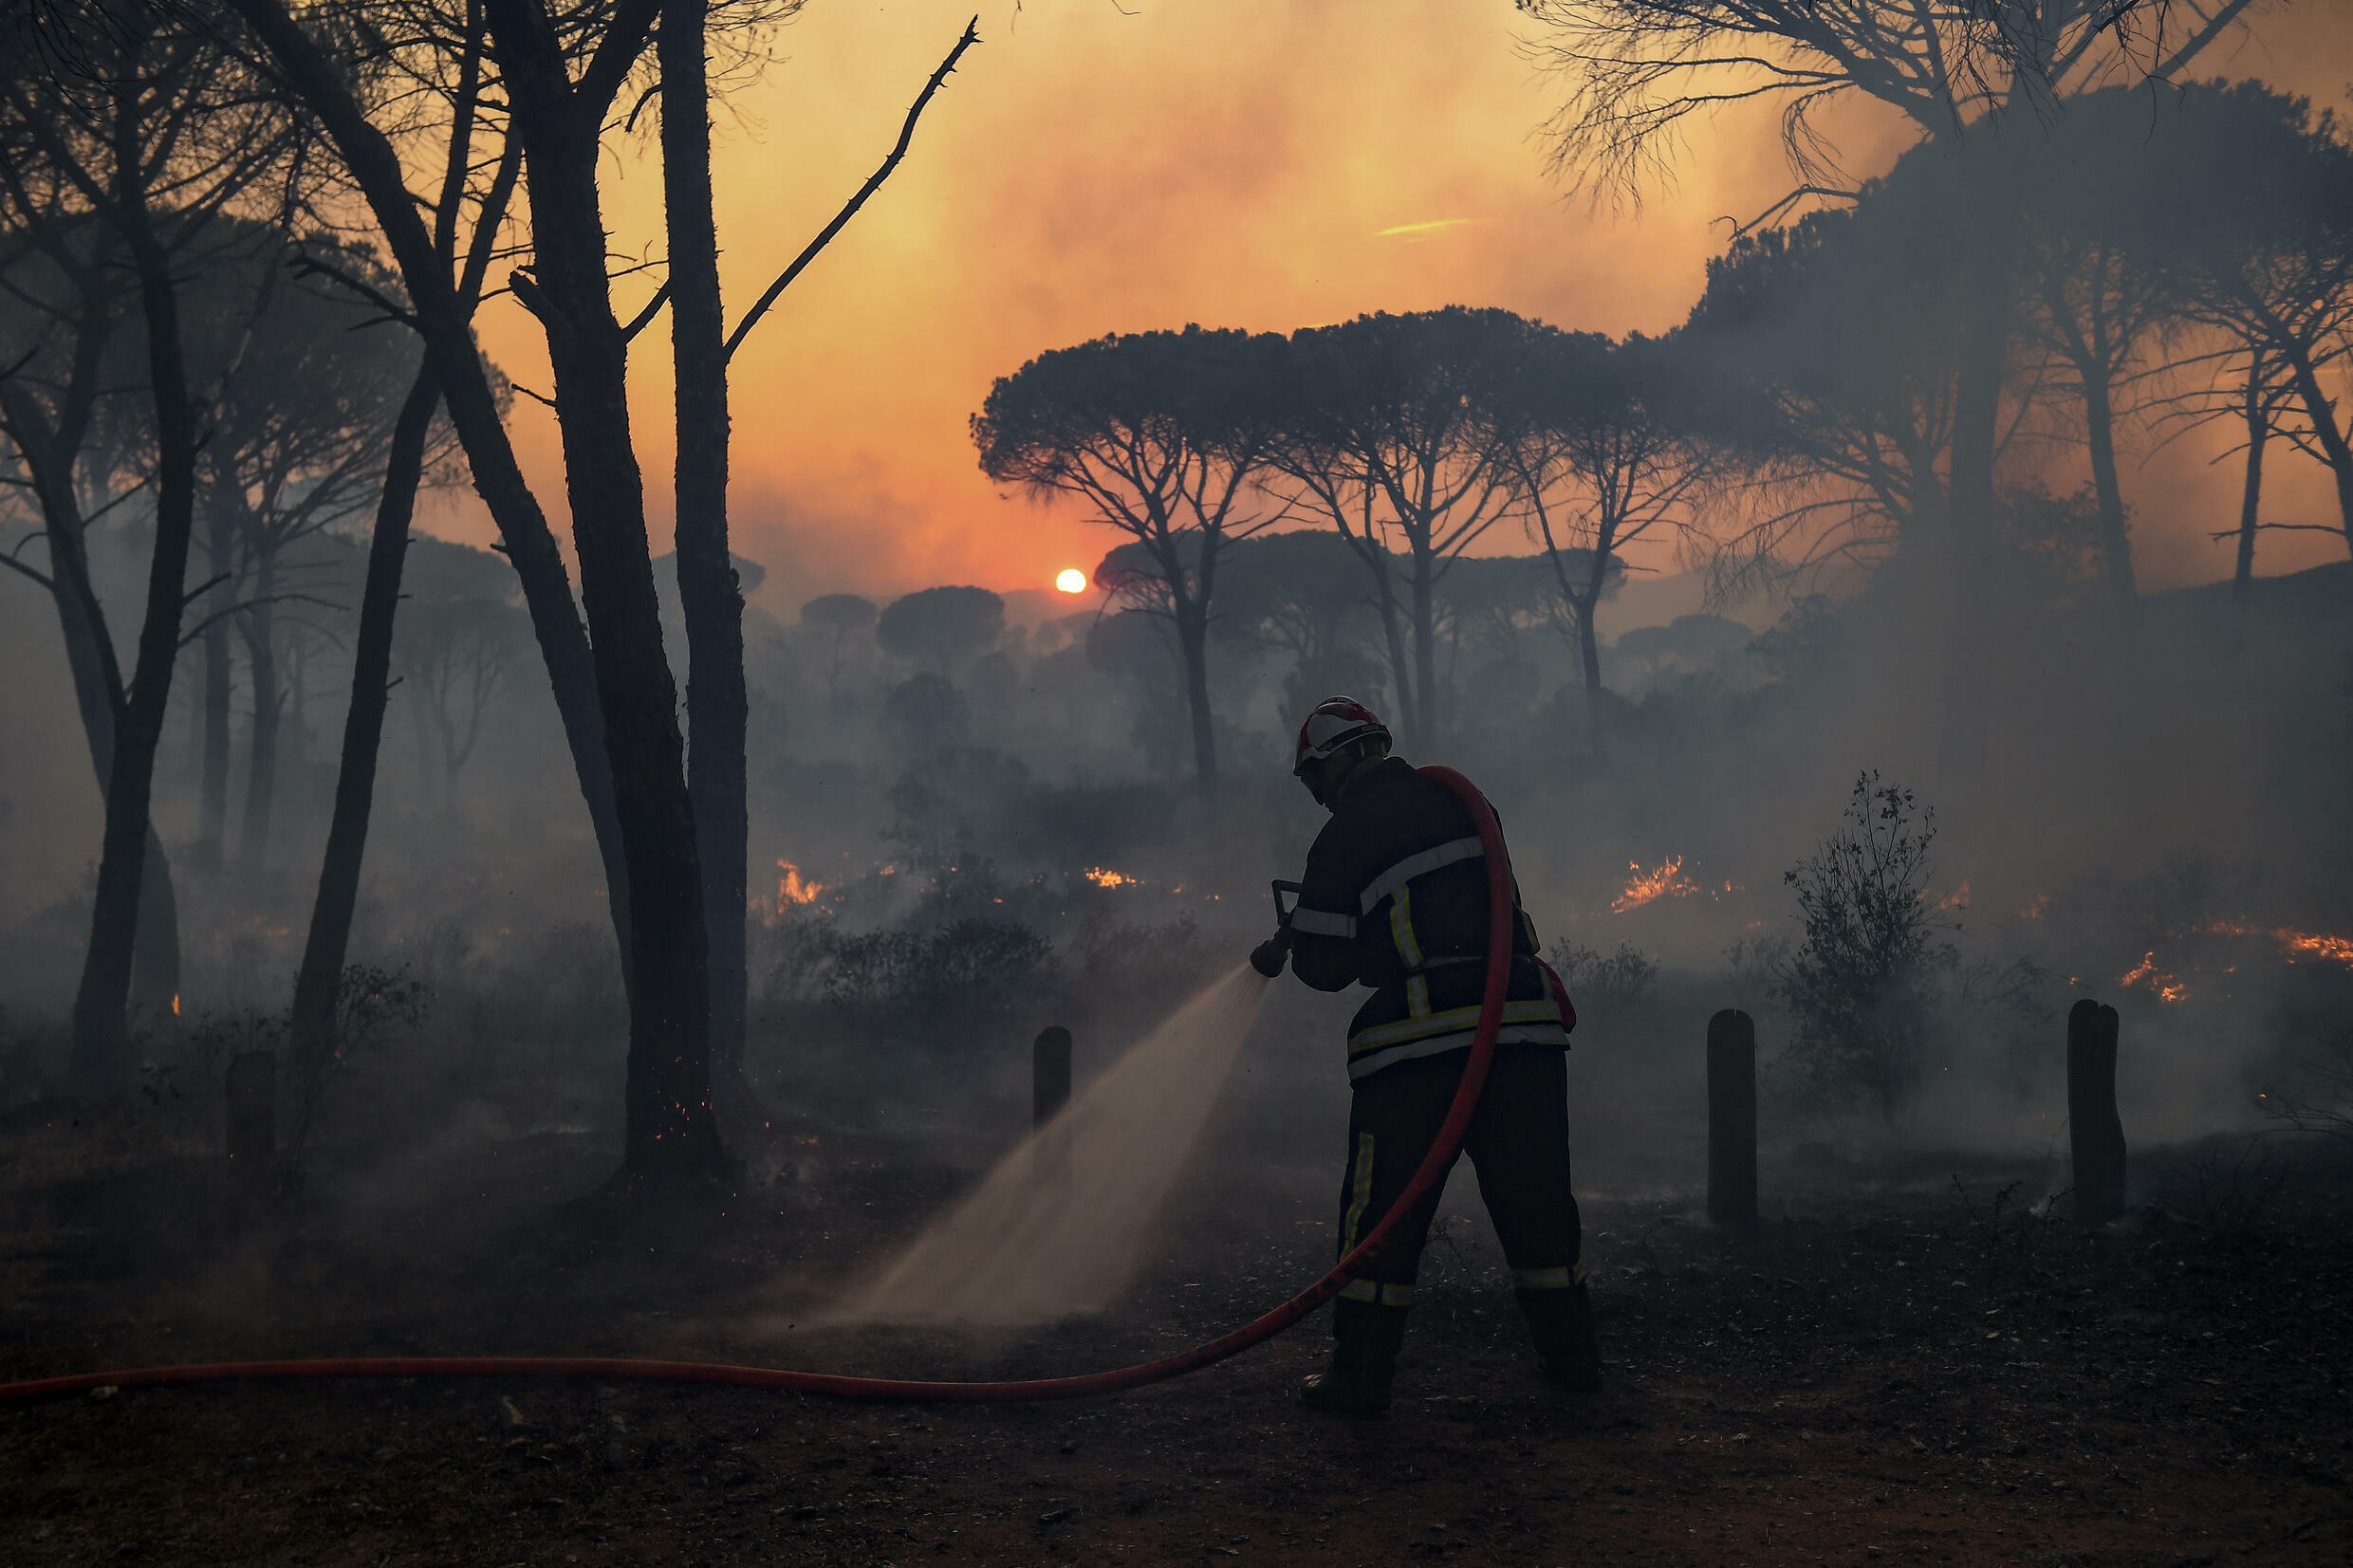 Some 1,200 firefighters were deployed to battle France's worst wildfire of the summer